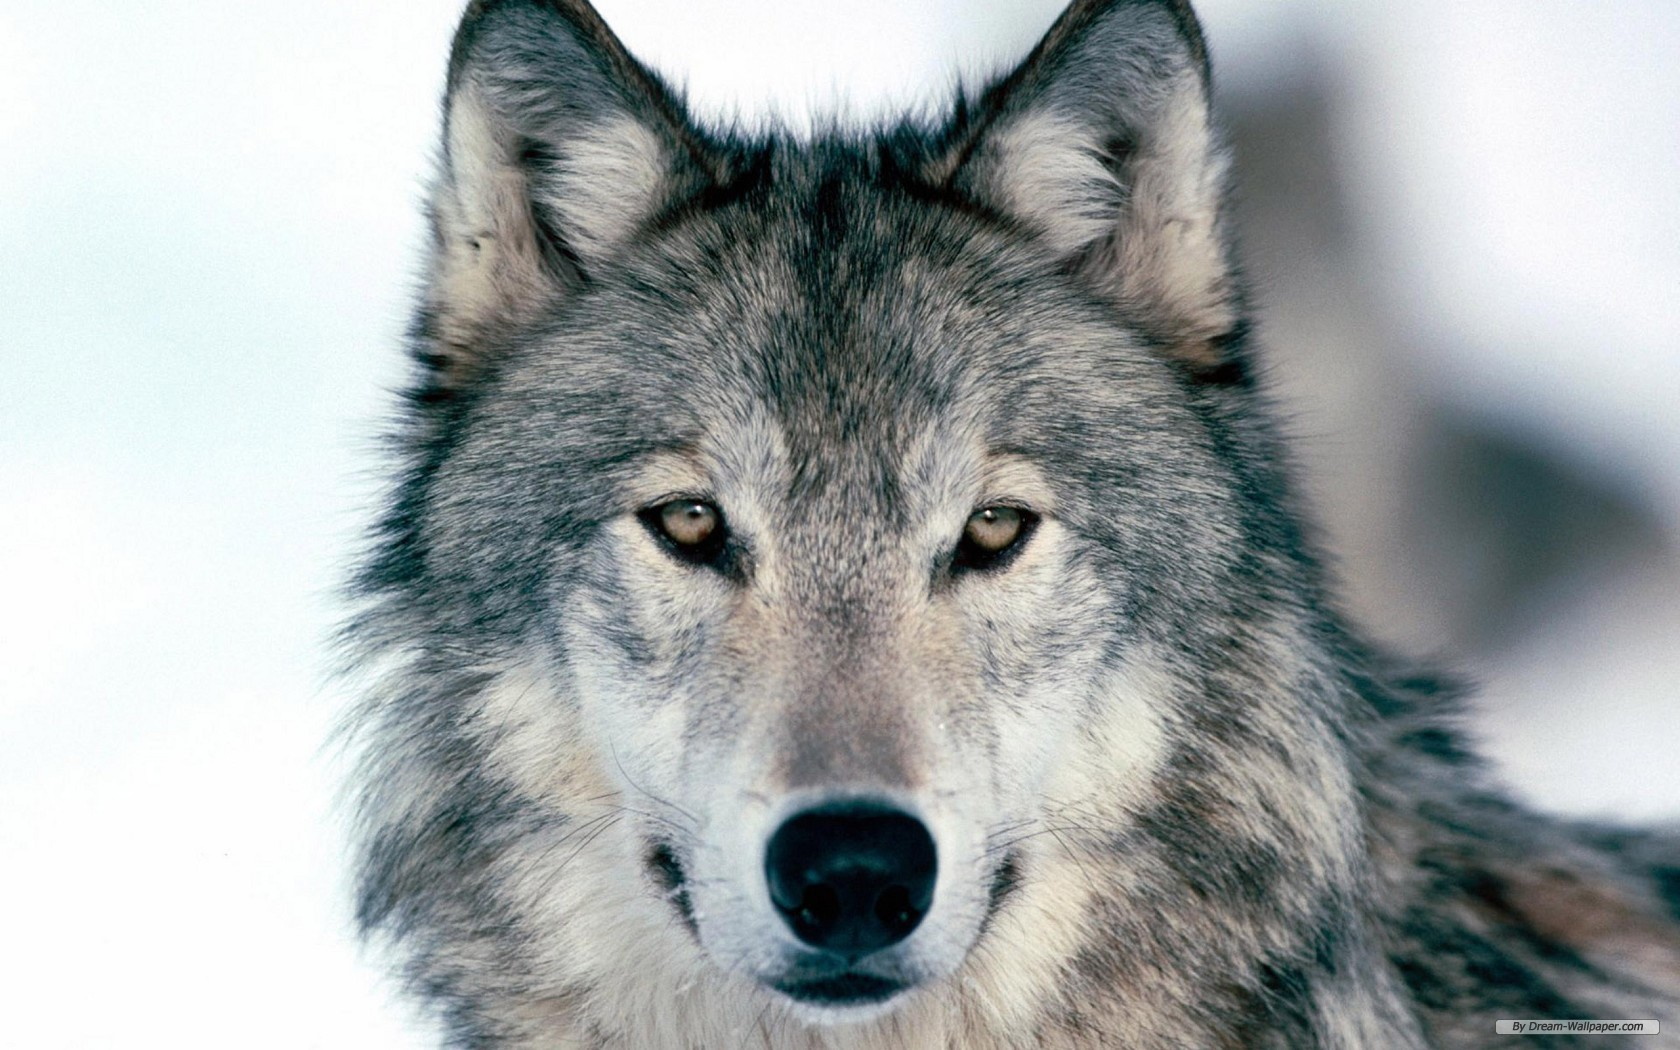 free wallpaper free animal wallpaper wolf wallpaper 1680x1050 - Animal Pictures To Print Free